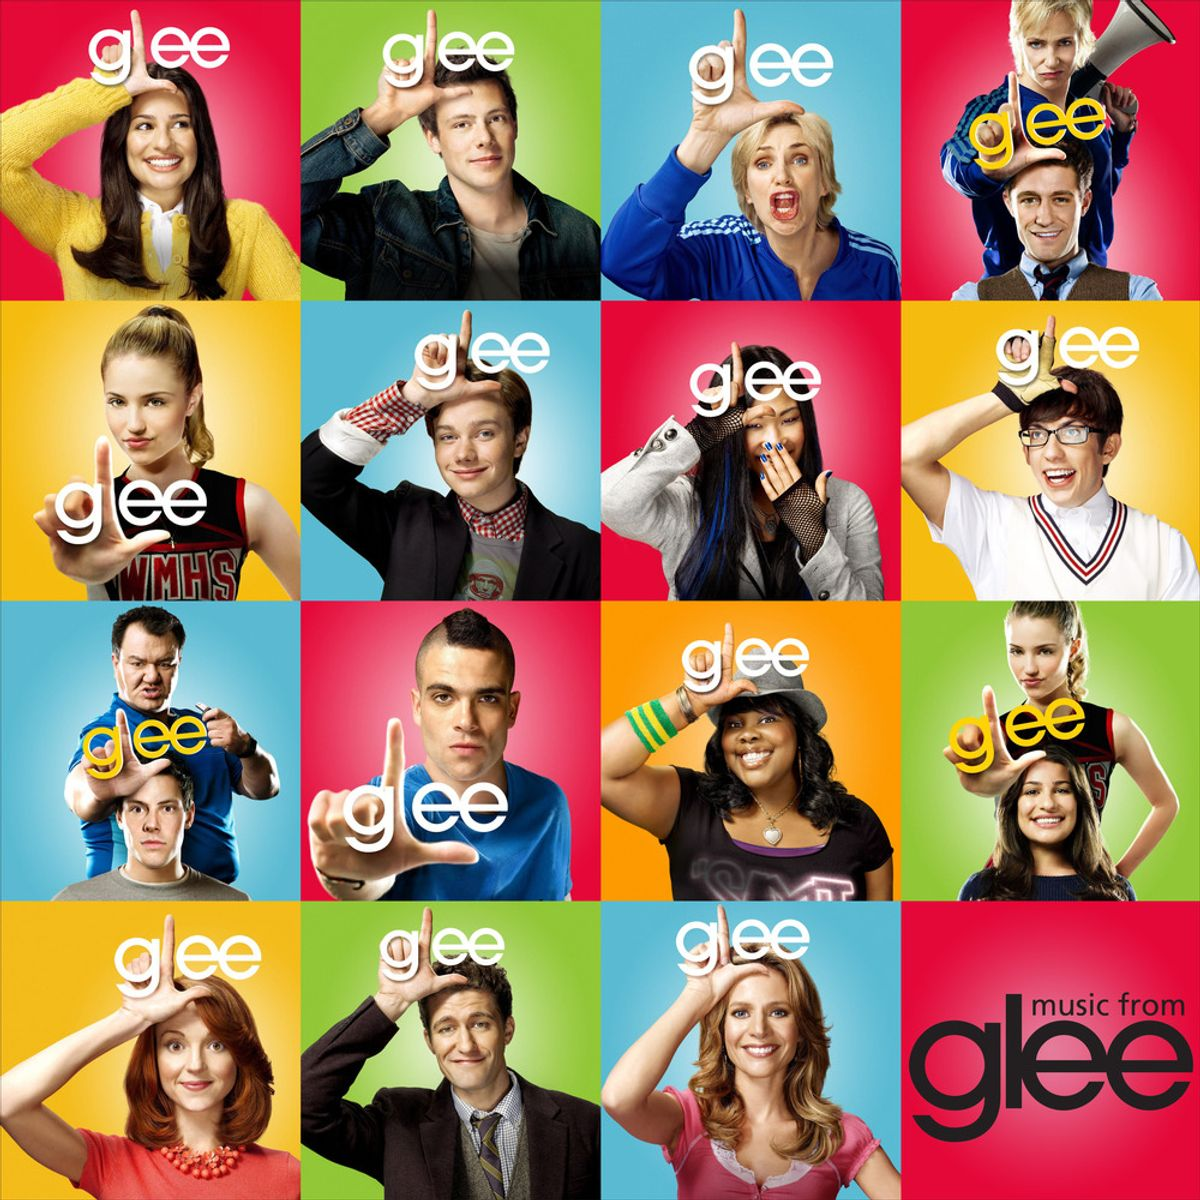 7 of the Best Glee Covers